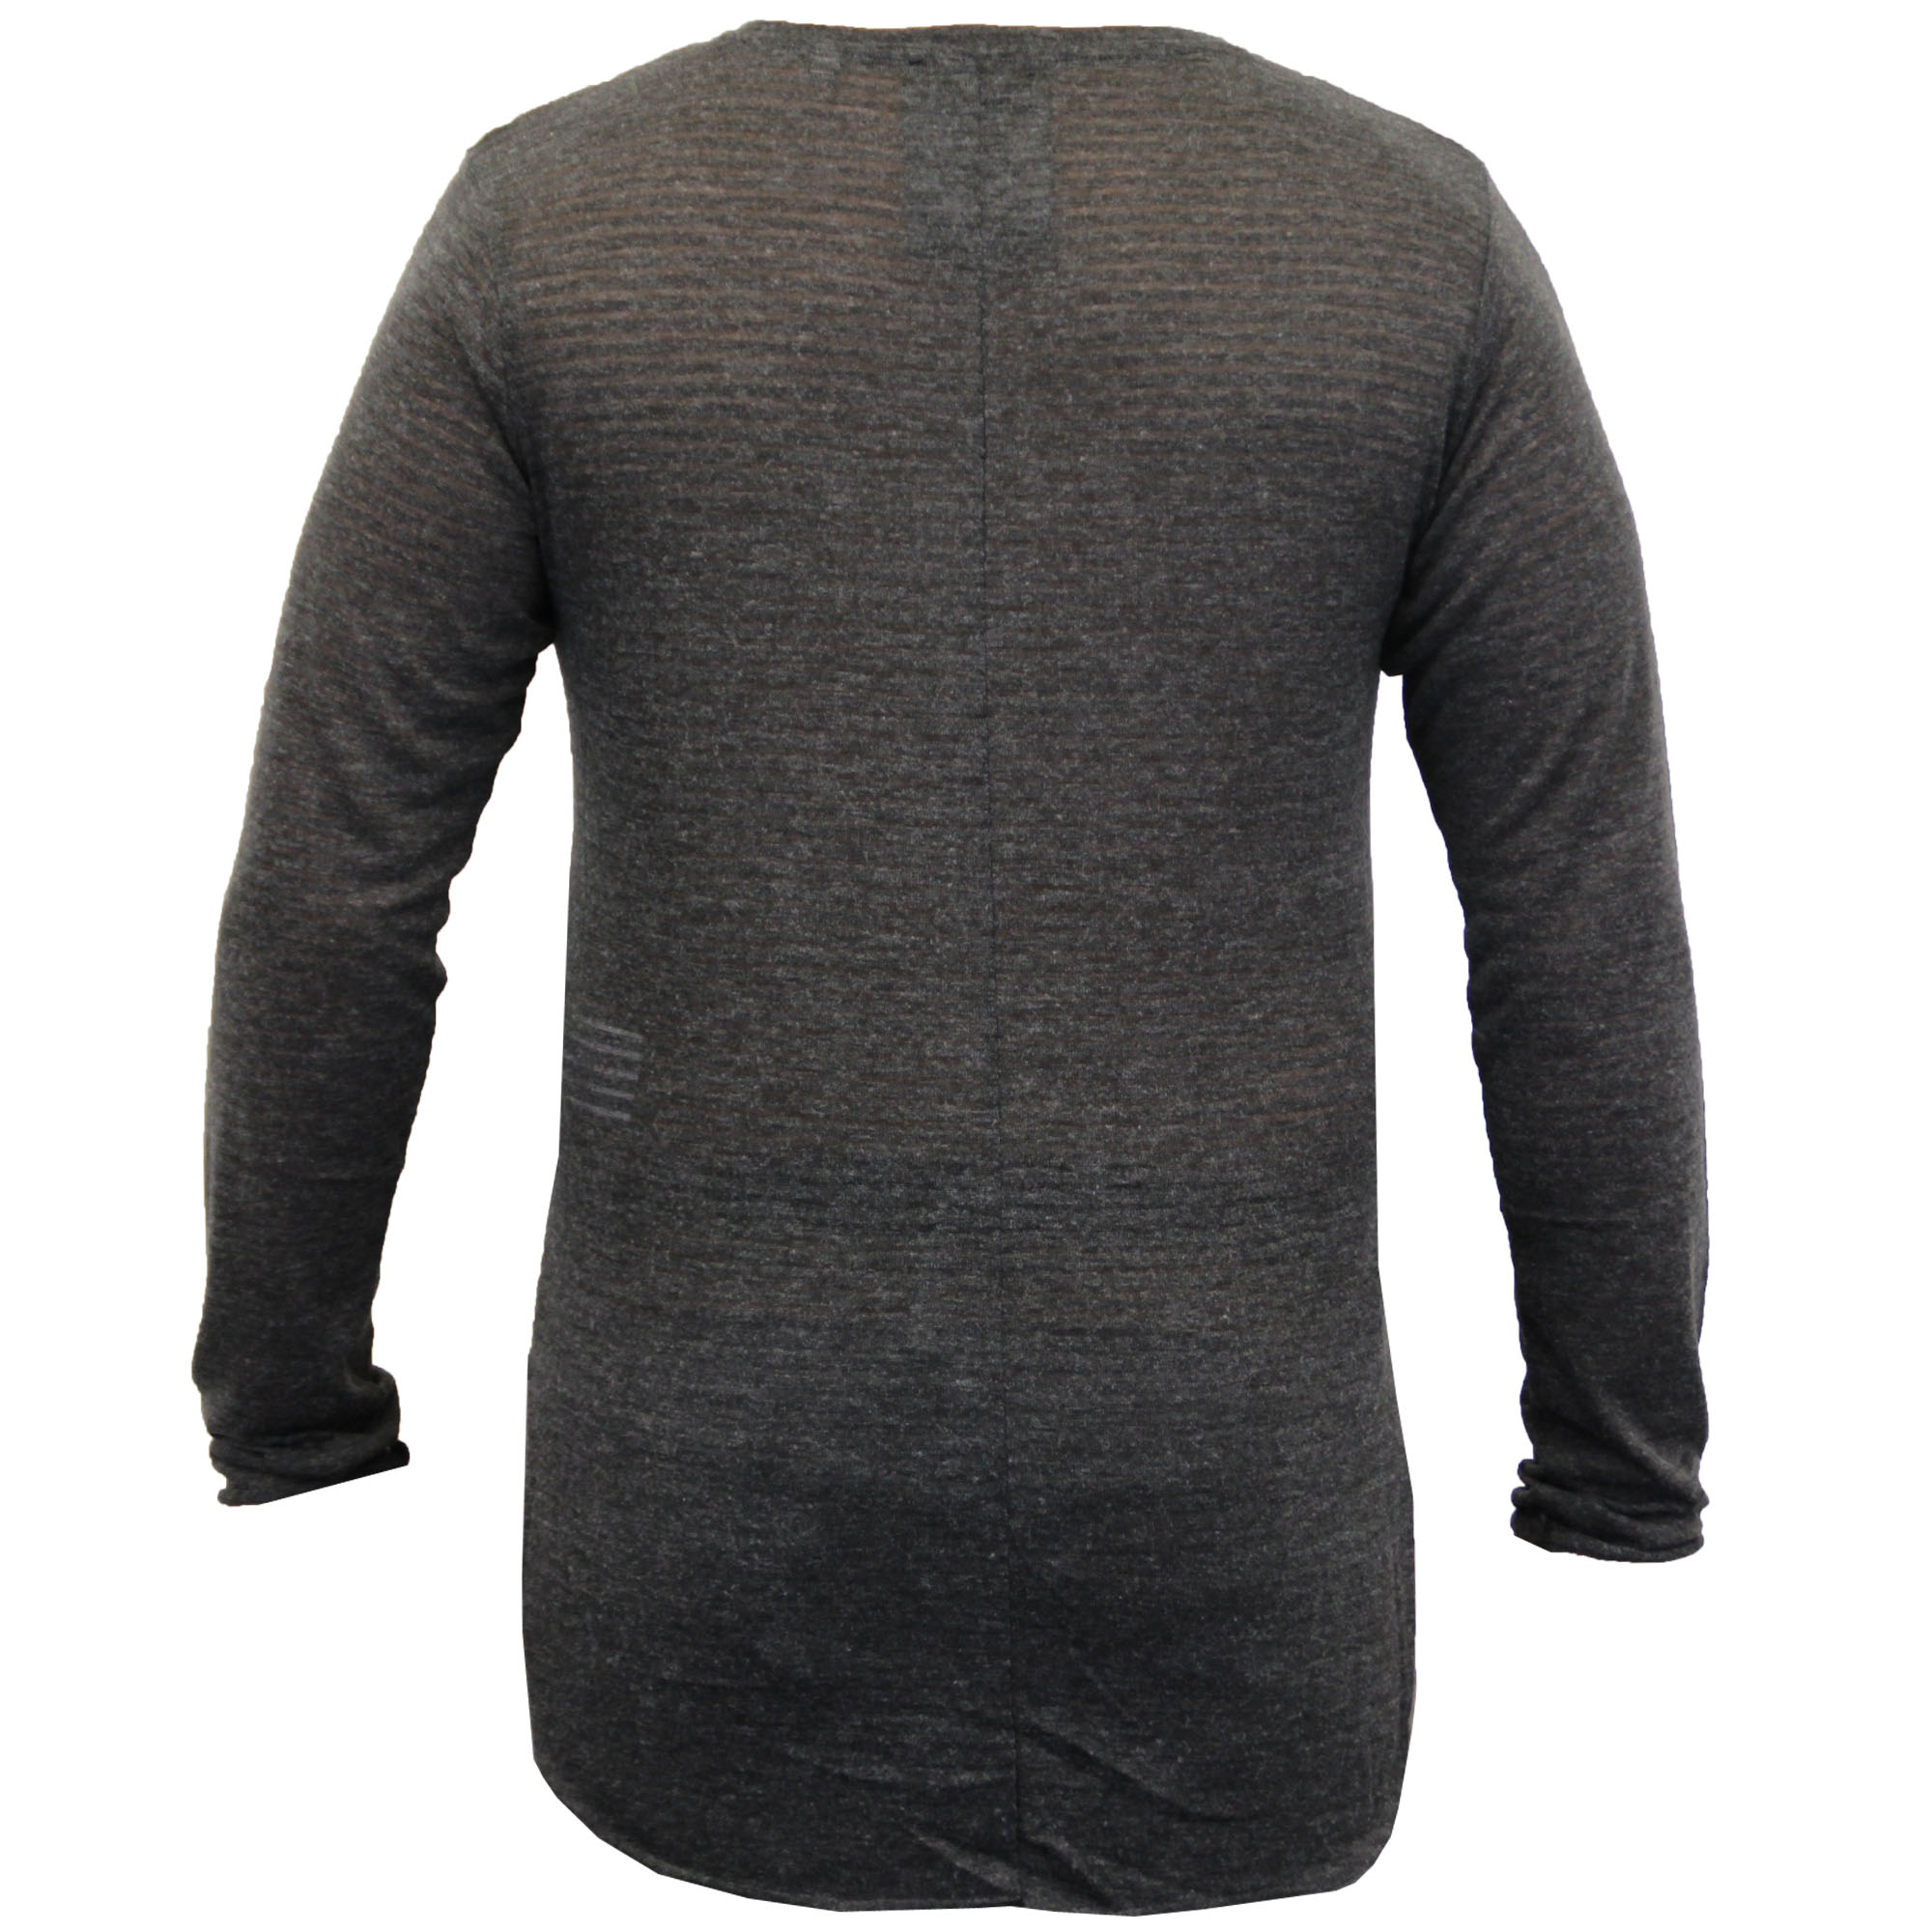 Mens-Long-Line-Jumper-Soul-Star-Sweater-High-Low-Hem-Top-Knitted-Pullover-Winter thumbnail 12